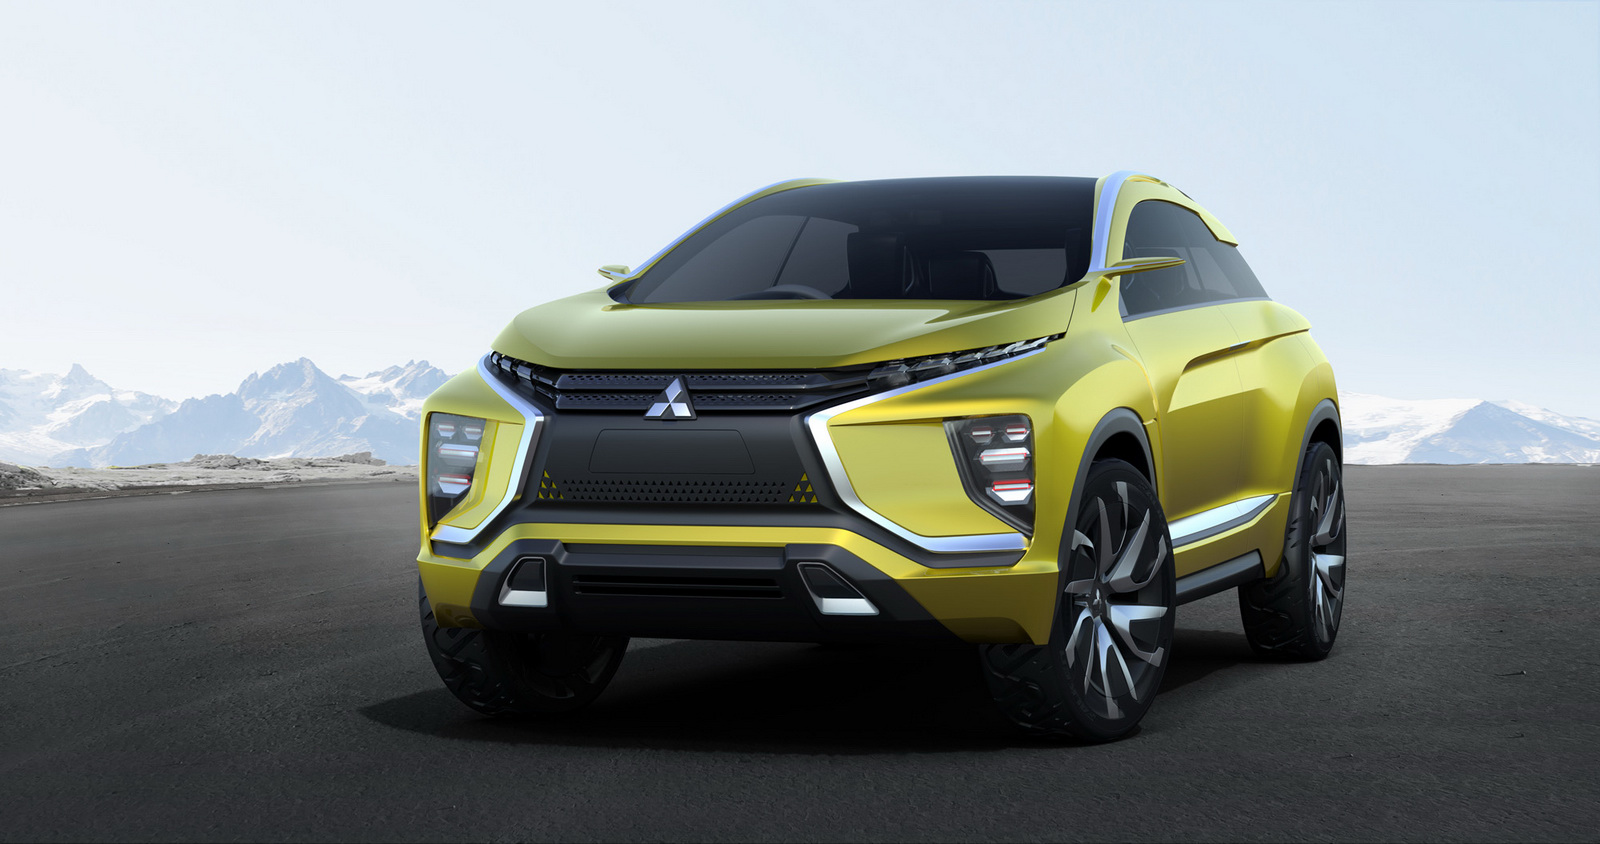 Ford Mustang Concept 2017 >> Mitsubishi all-electric mini SUV coming in 2019 - ForceGT.com